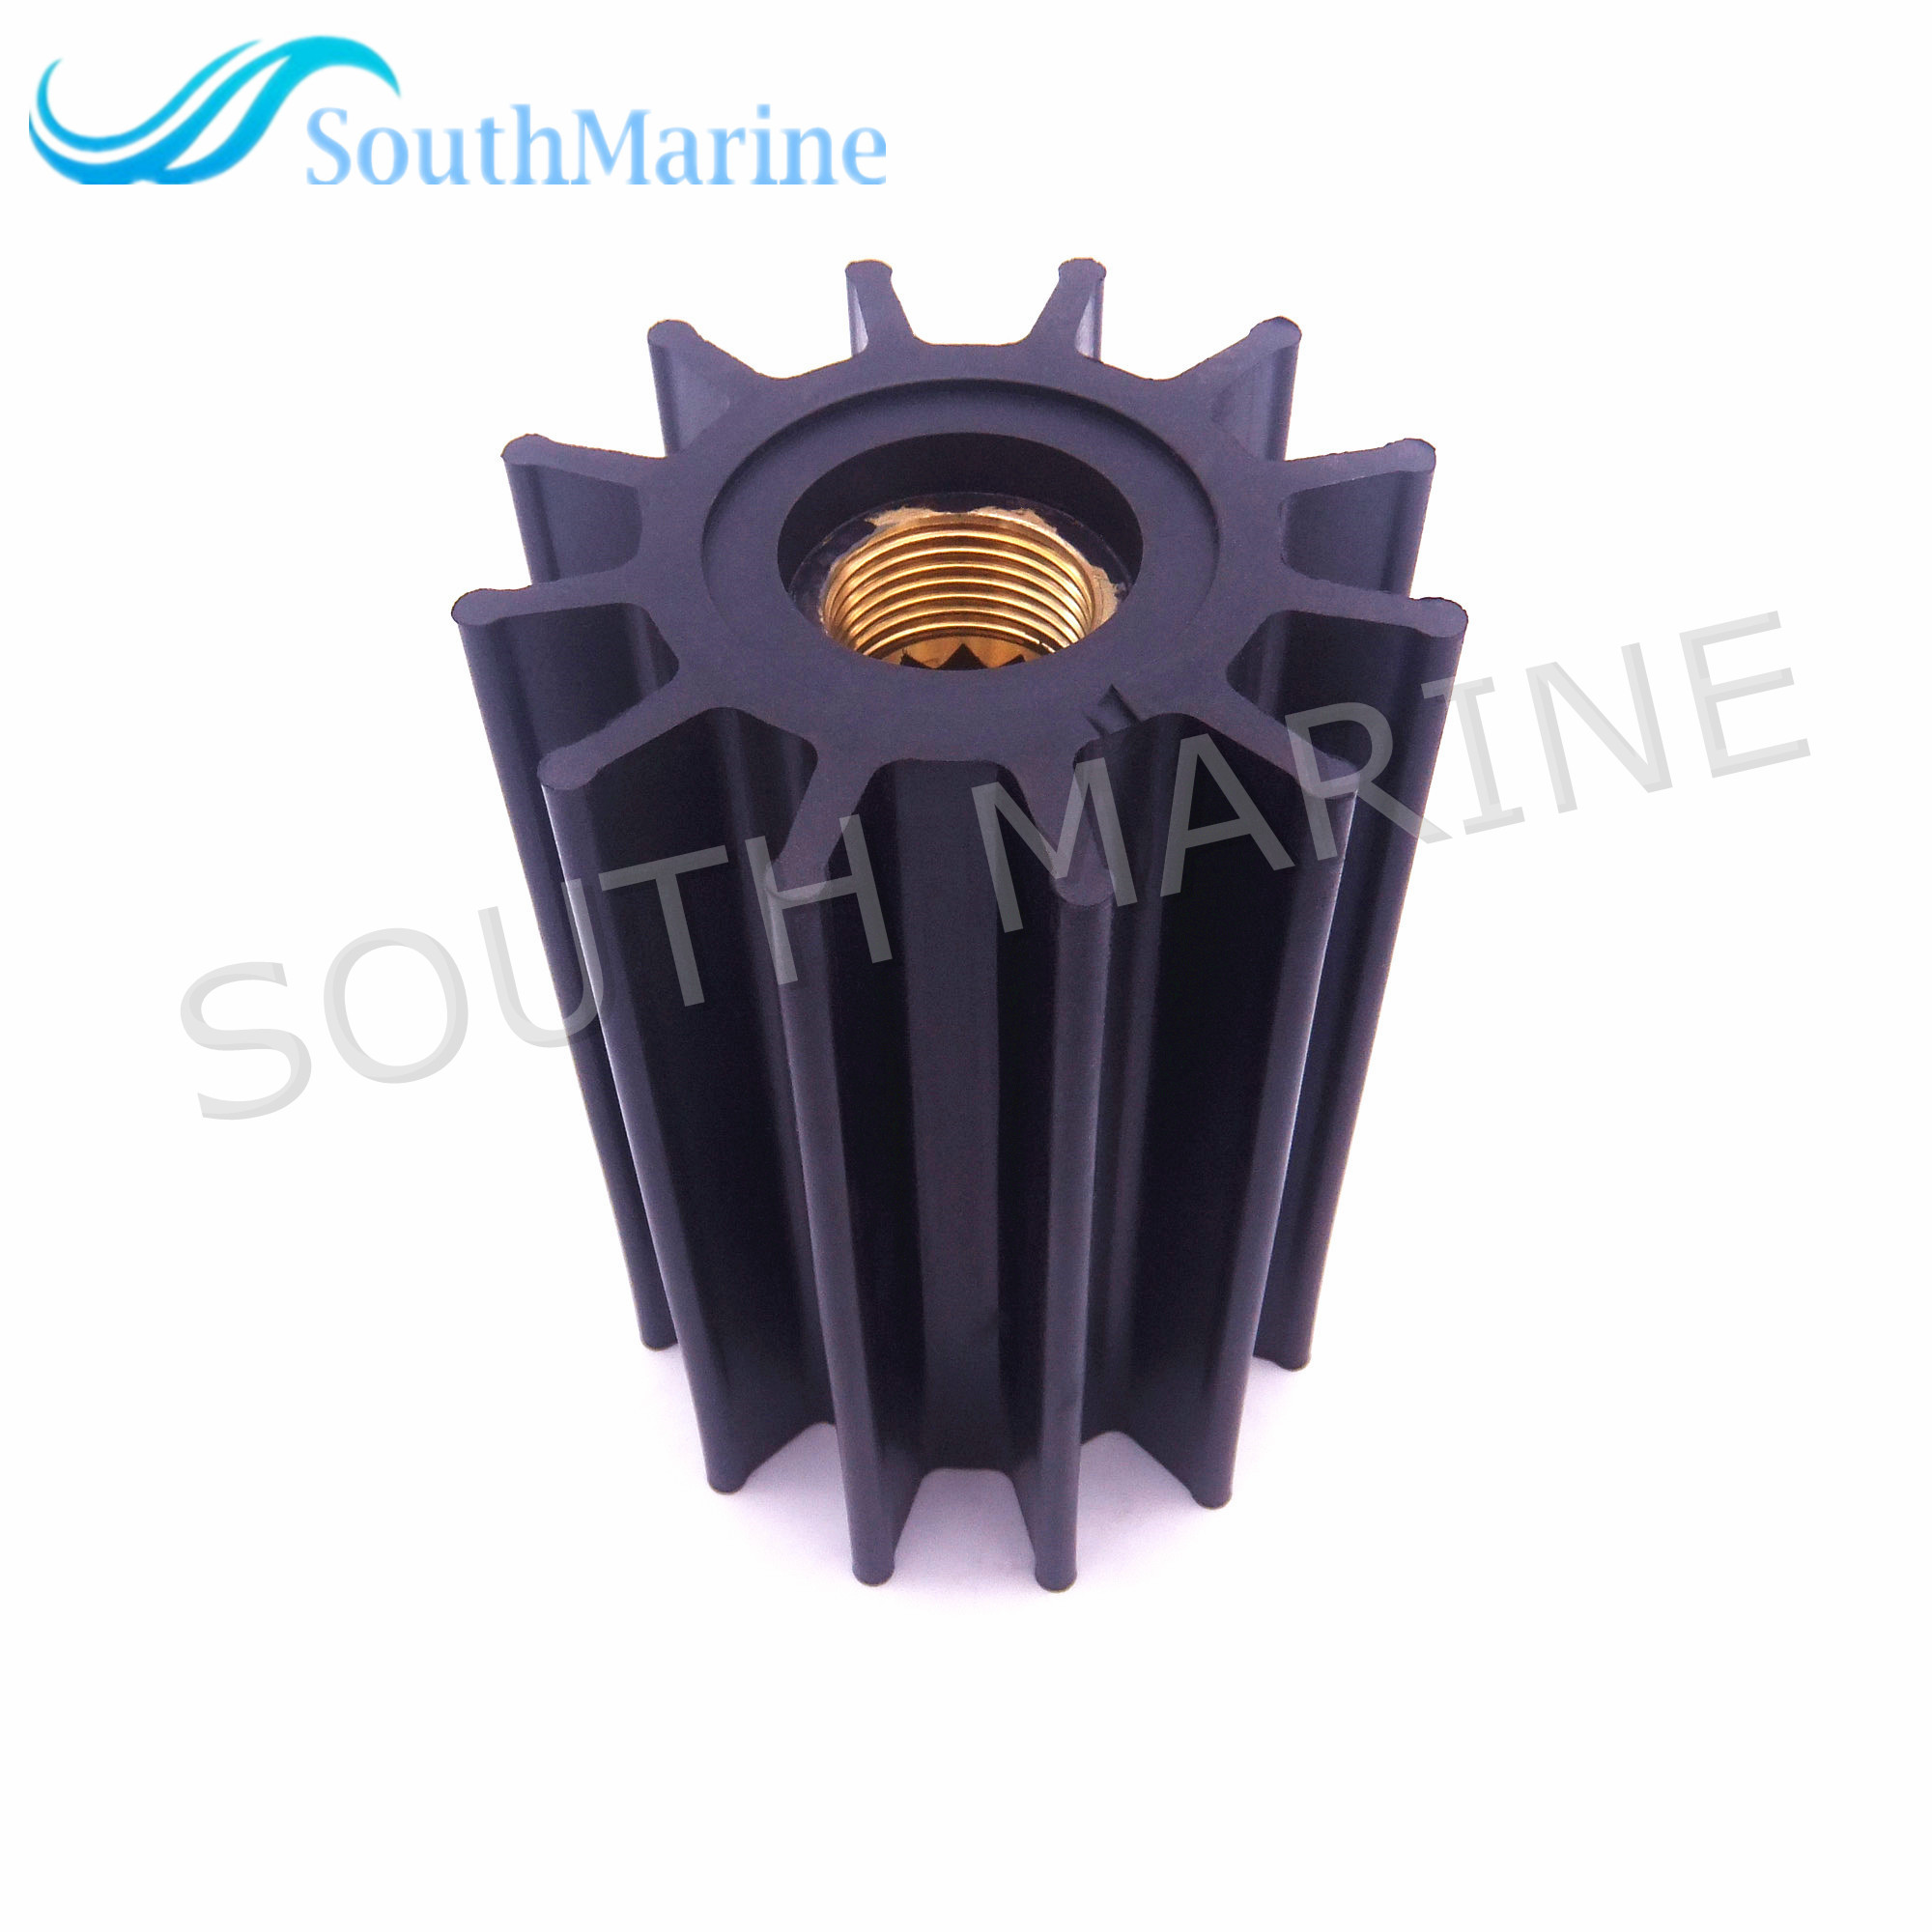 09-820B Water Pump Impeller for Johnson F95 Engine Pump, Neoprene high quality engine part oe 4575902 water pump for discovery 3